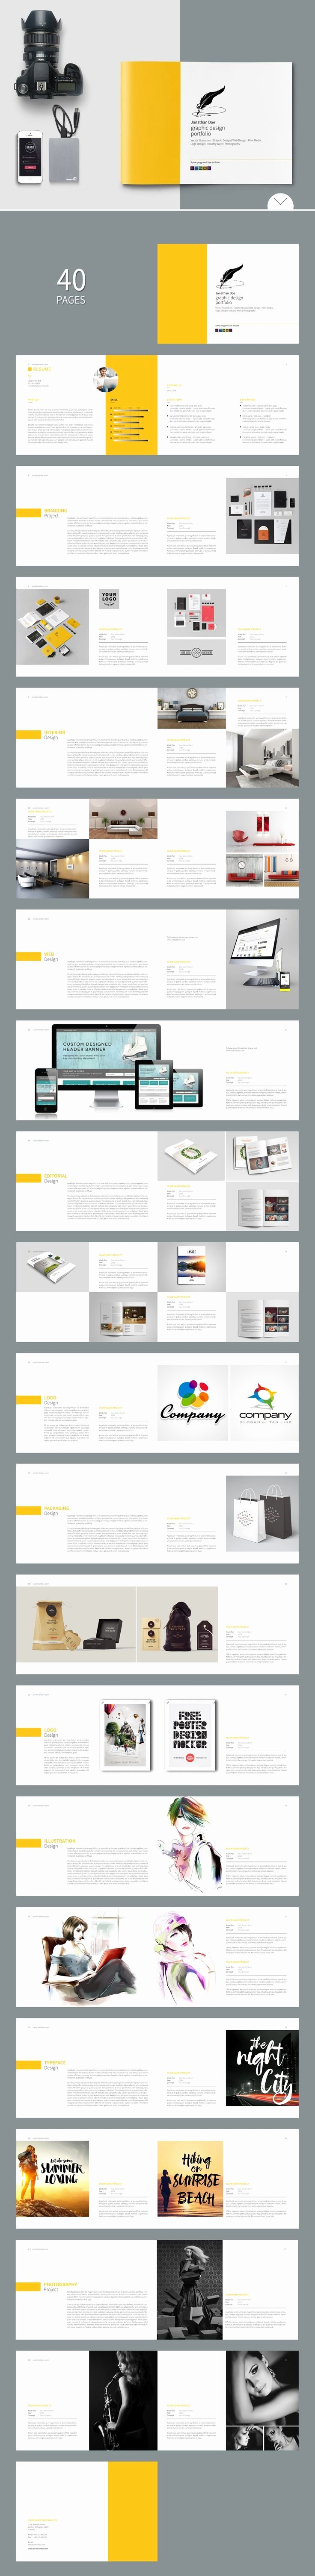 Indesign Portfolio Template Free Elegant Free Indesign Portfolio Layout Templates Design Graphic